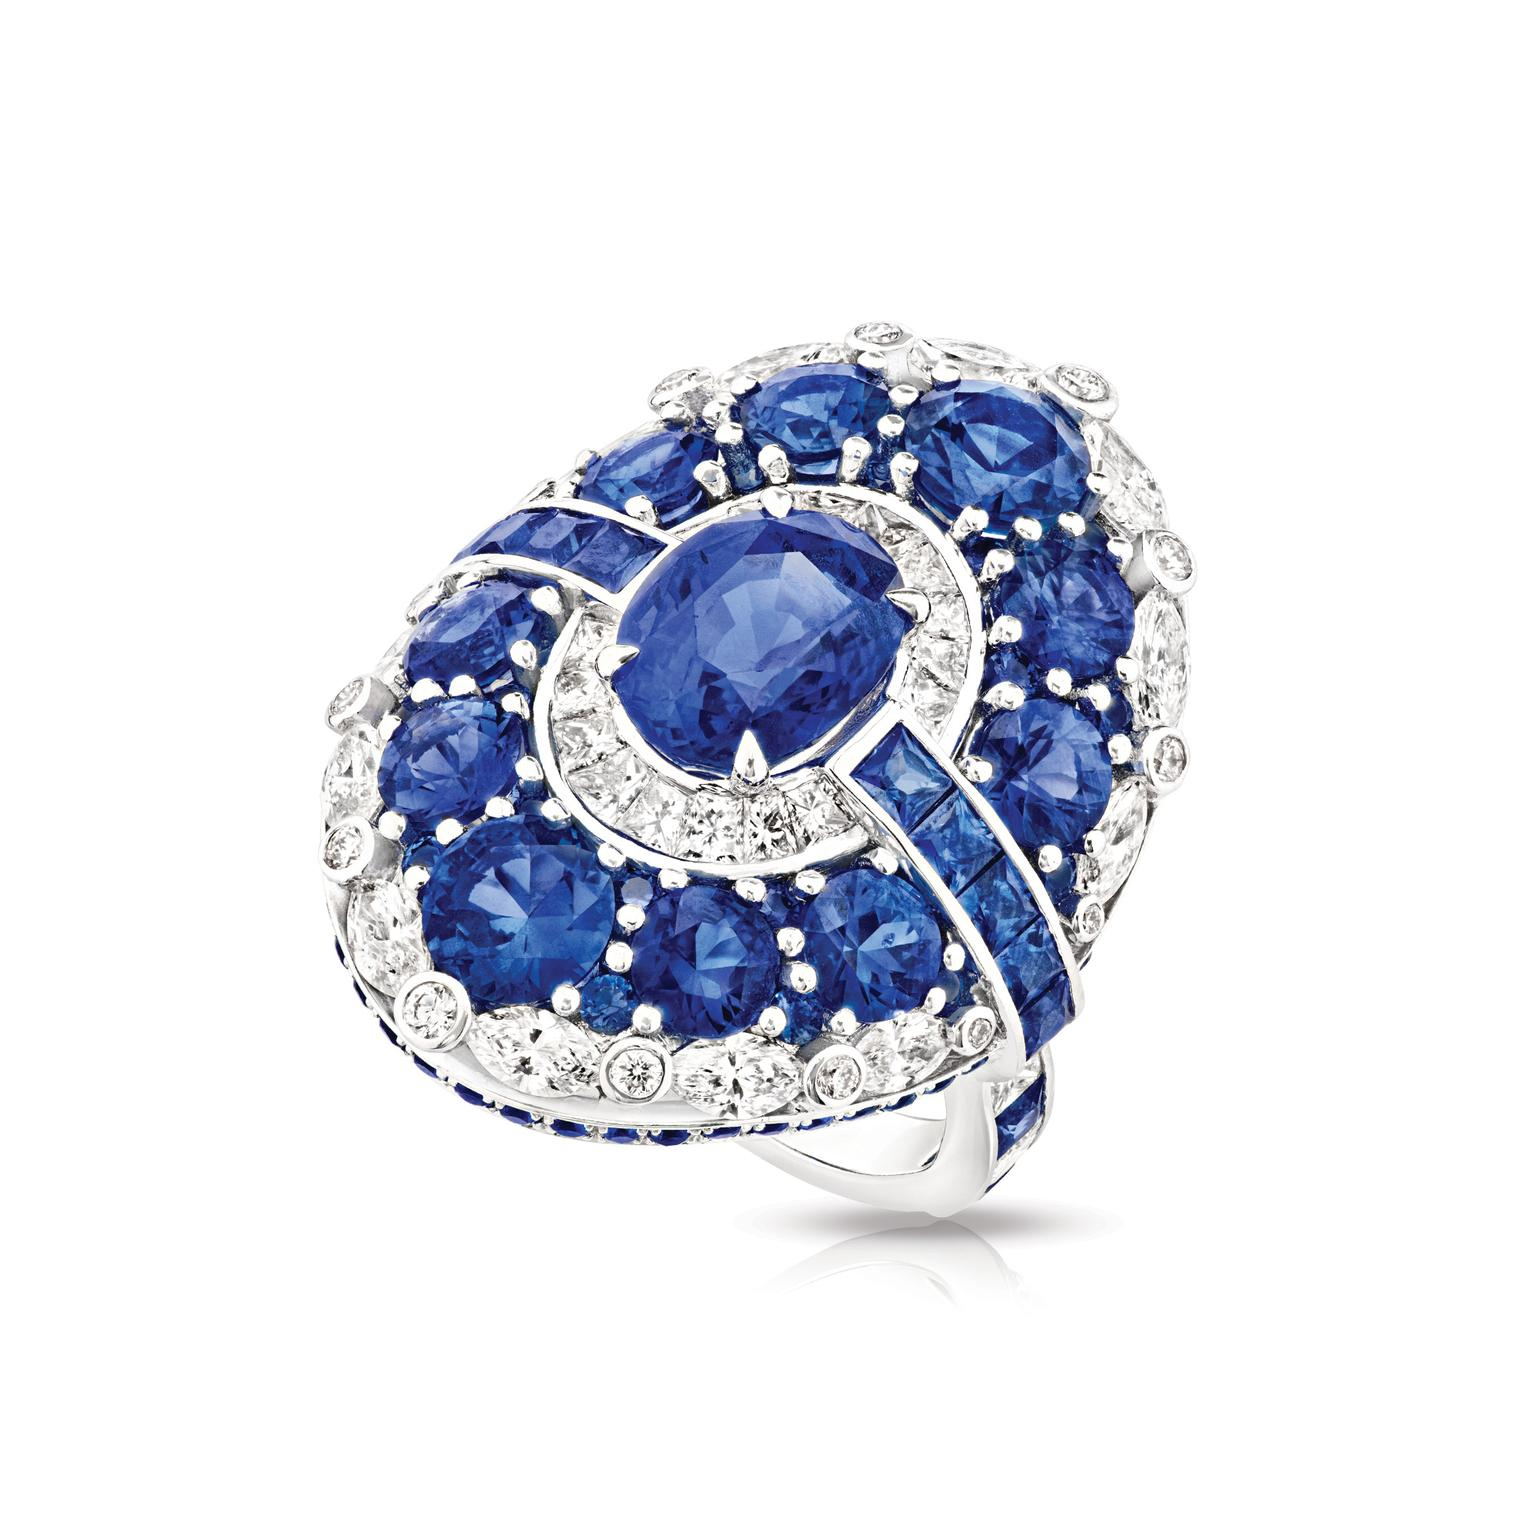 Fabergé sapphire ring